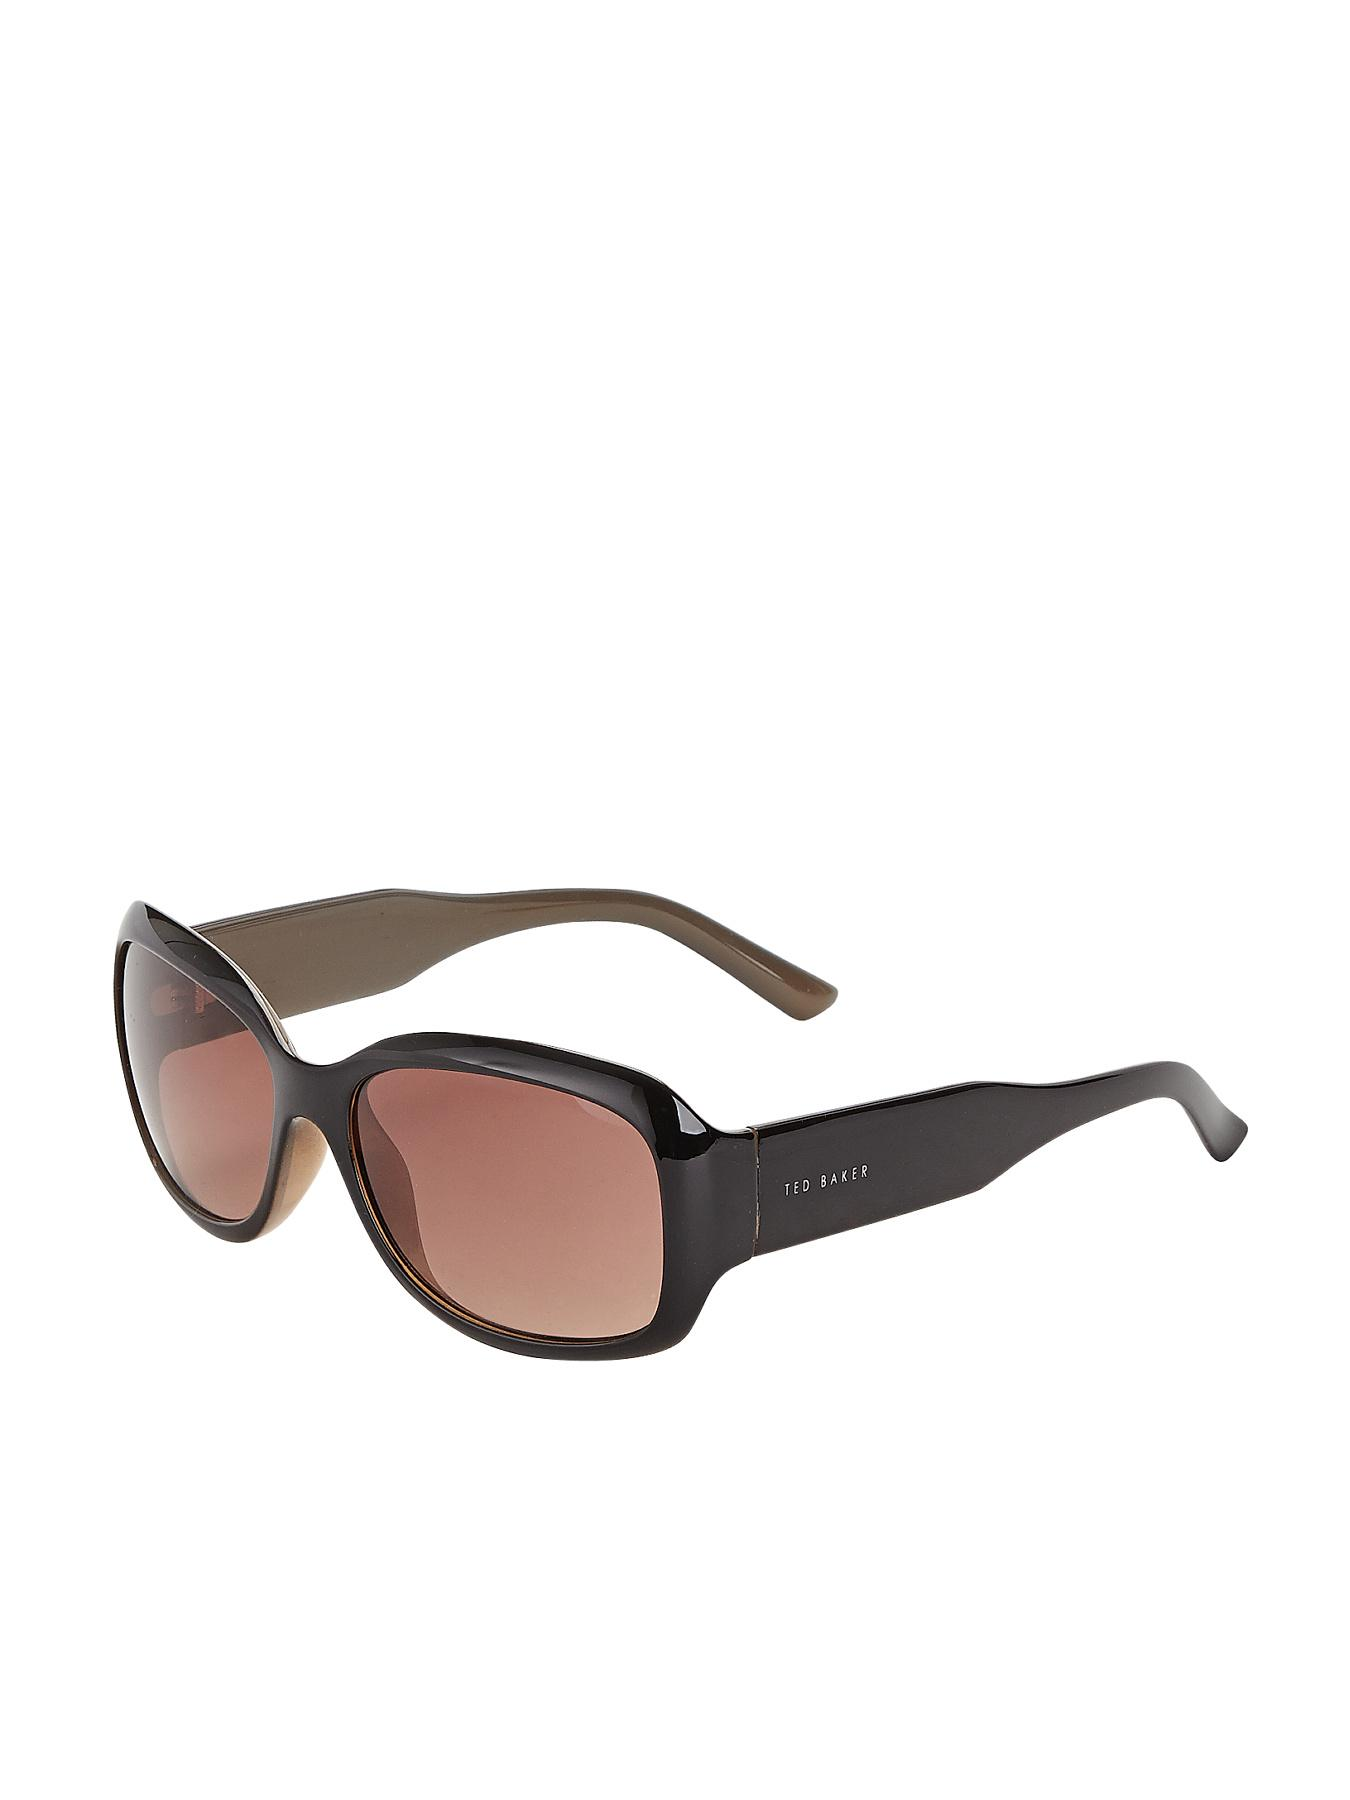 Ted Baker Sunglasses - Black, Black